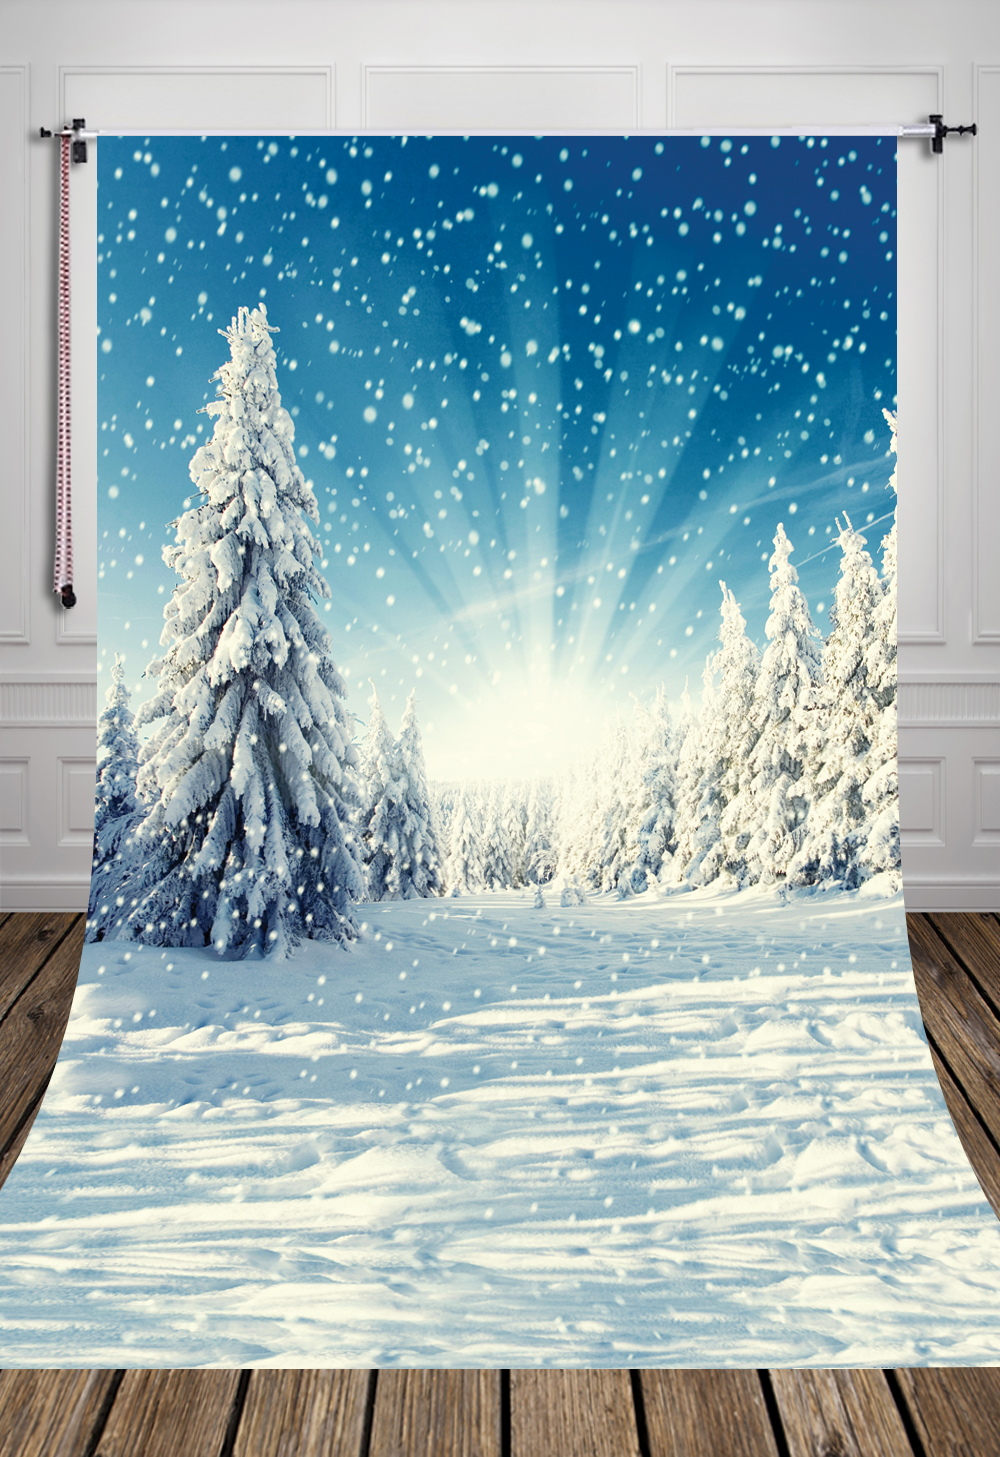 HUAYI Winter Forest landscape Christmas Photography Photo Backdrop D2396<br><br>Aliexpress